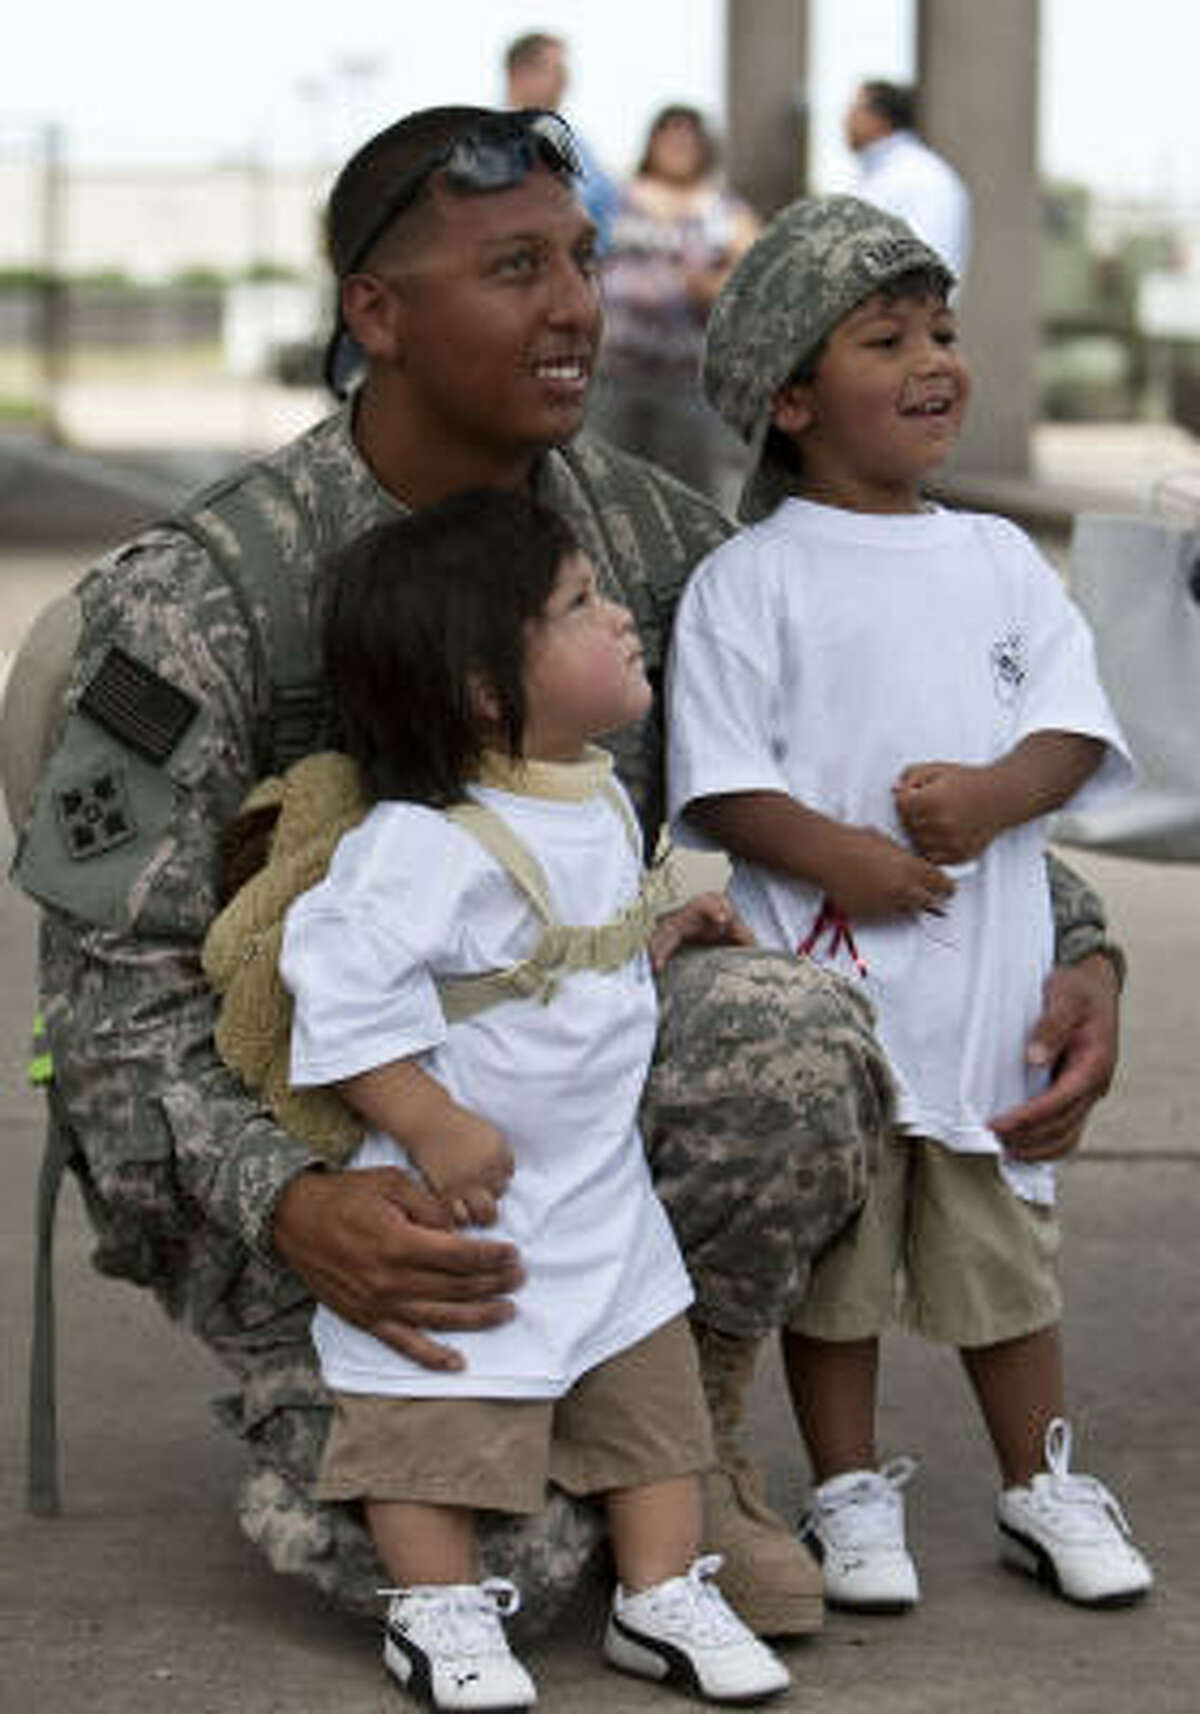 Ssg.Rogelio Martinez poses for a photograph with his son's Armando and Lorenzo Martinez.